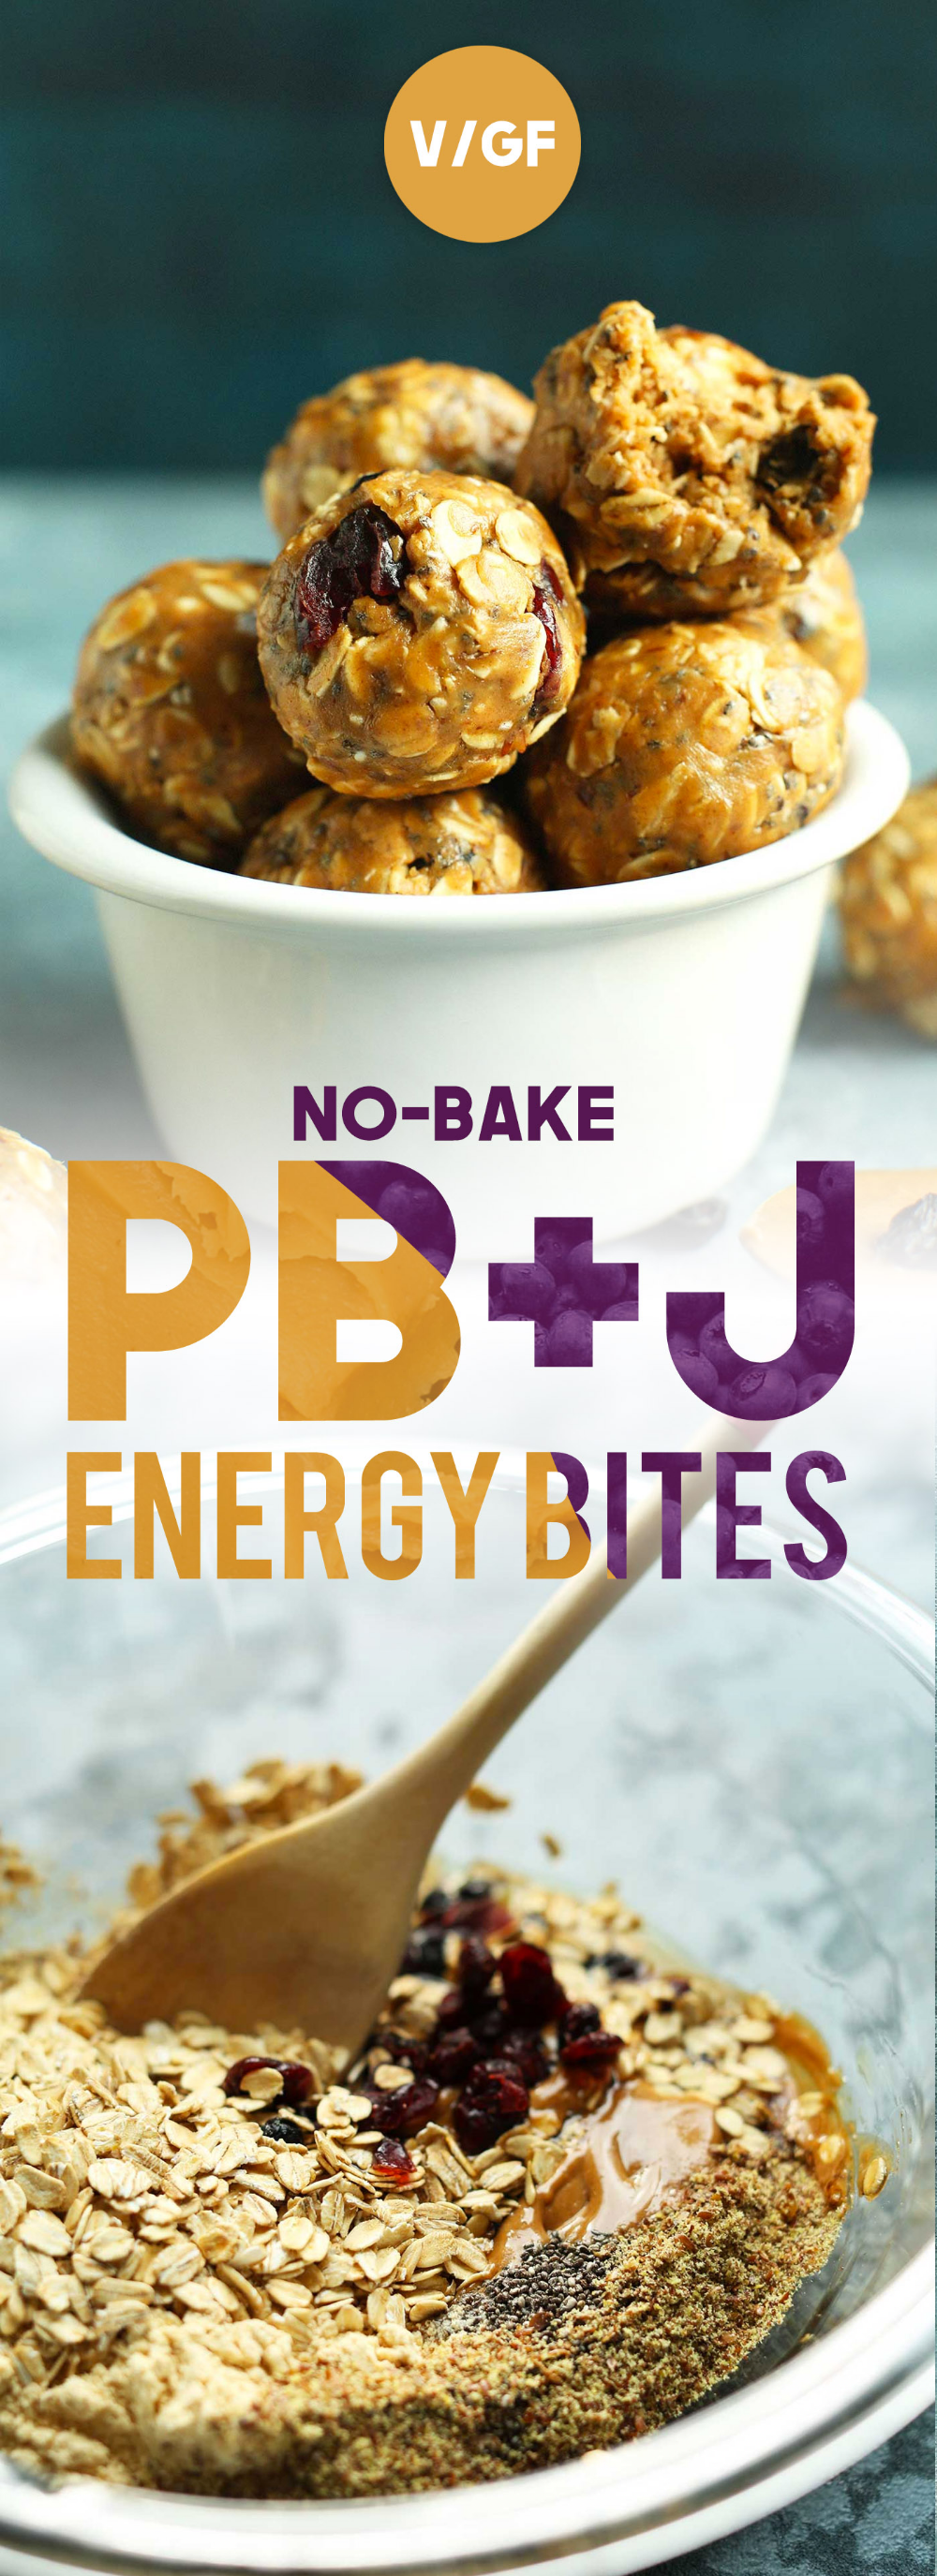 No-Bake Peanut Butter & Jelly Energy Bites | Minimalist Baker Recipes